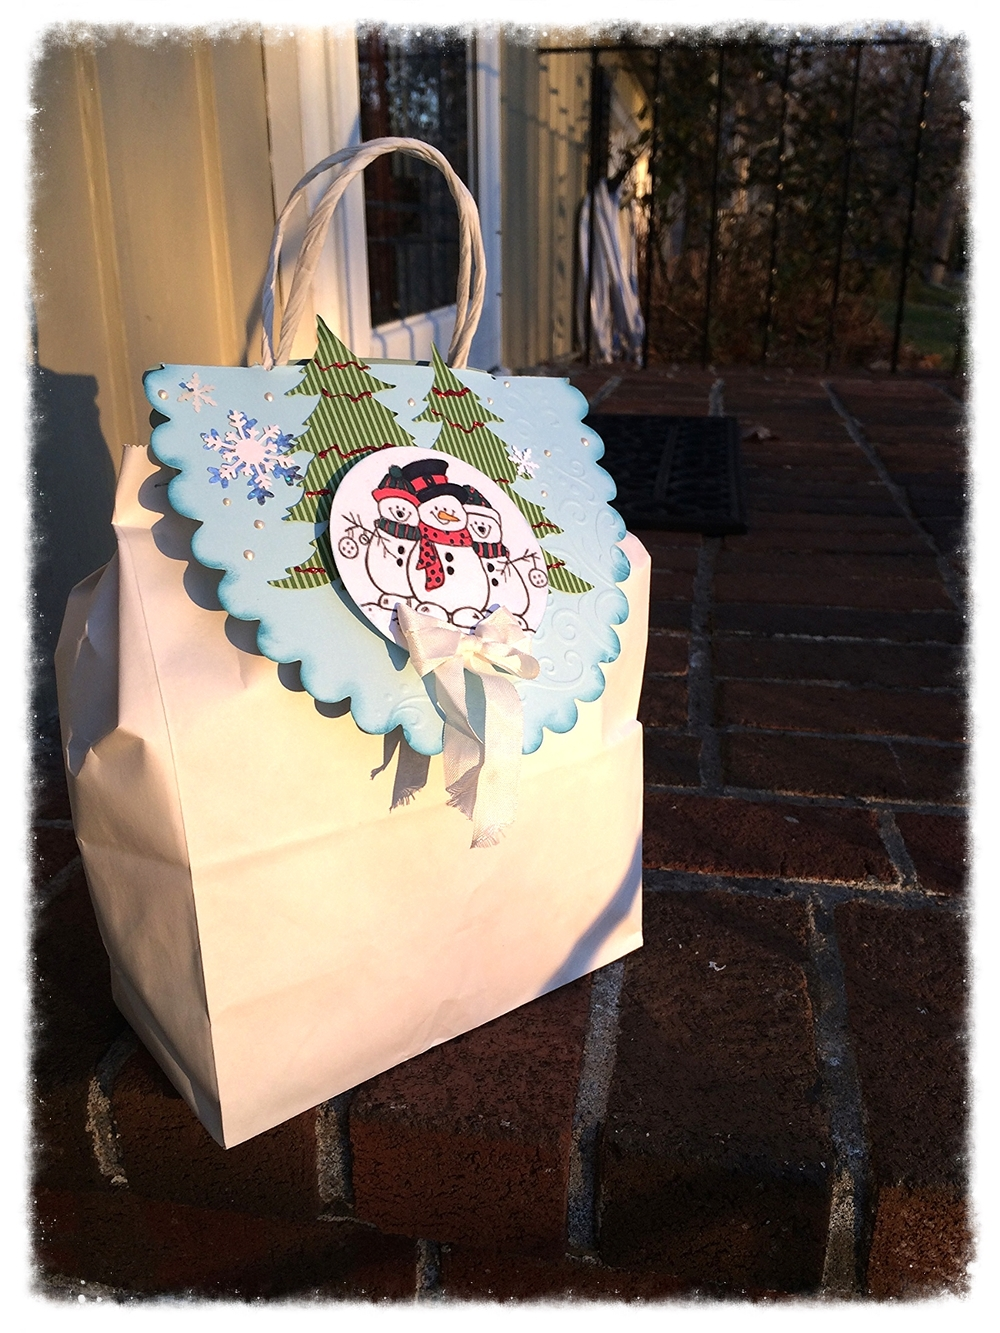 This was a cute No Peeking bag topper that we got to embellish as a little extra thank you project.